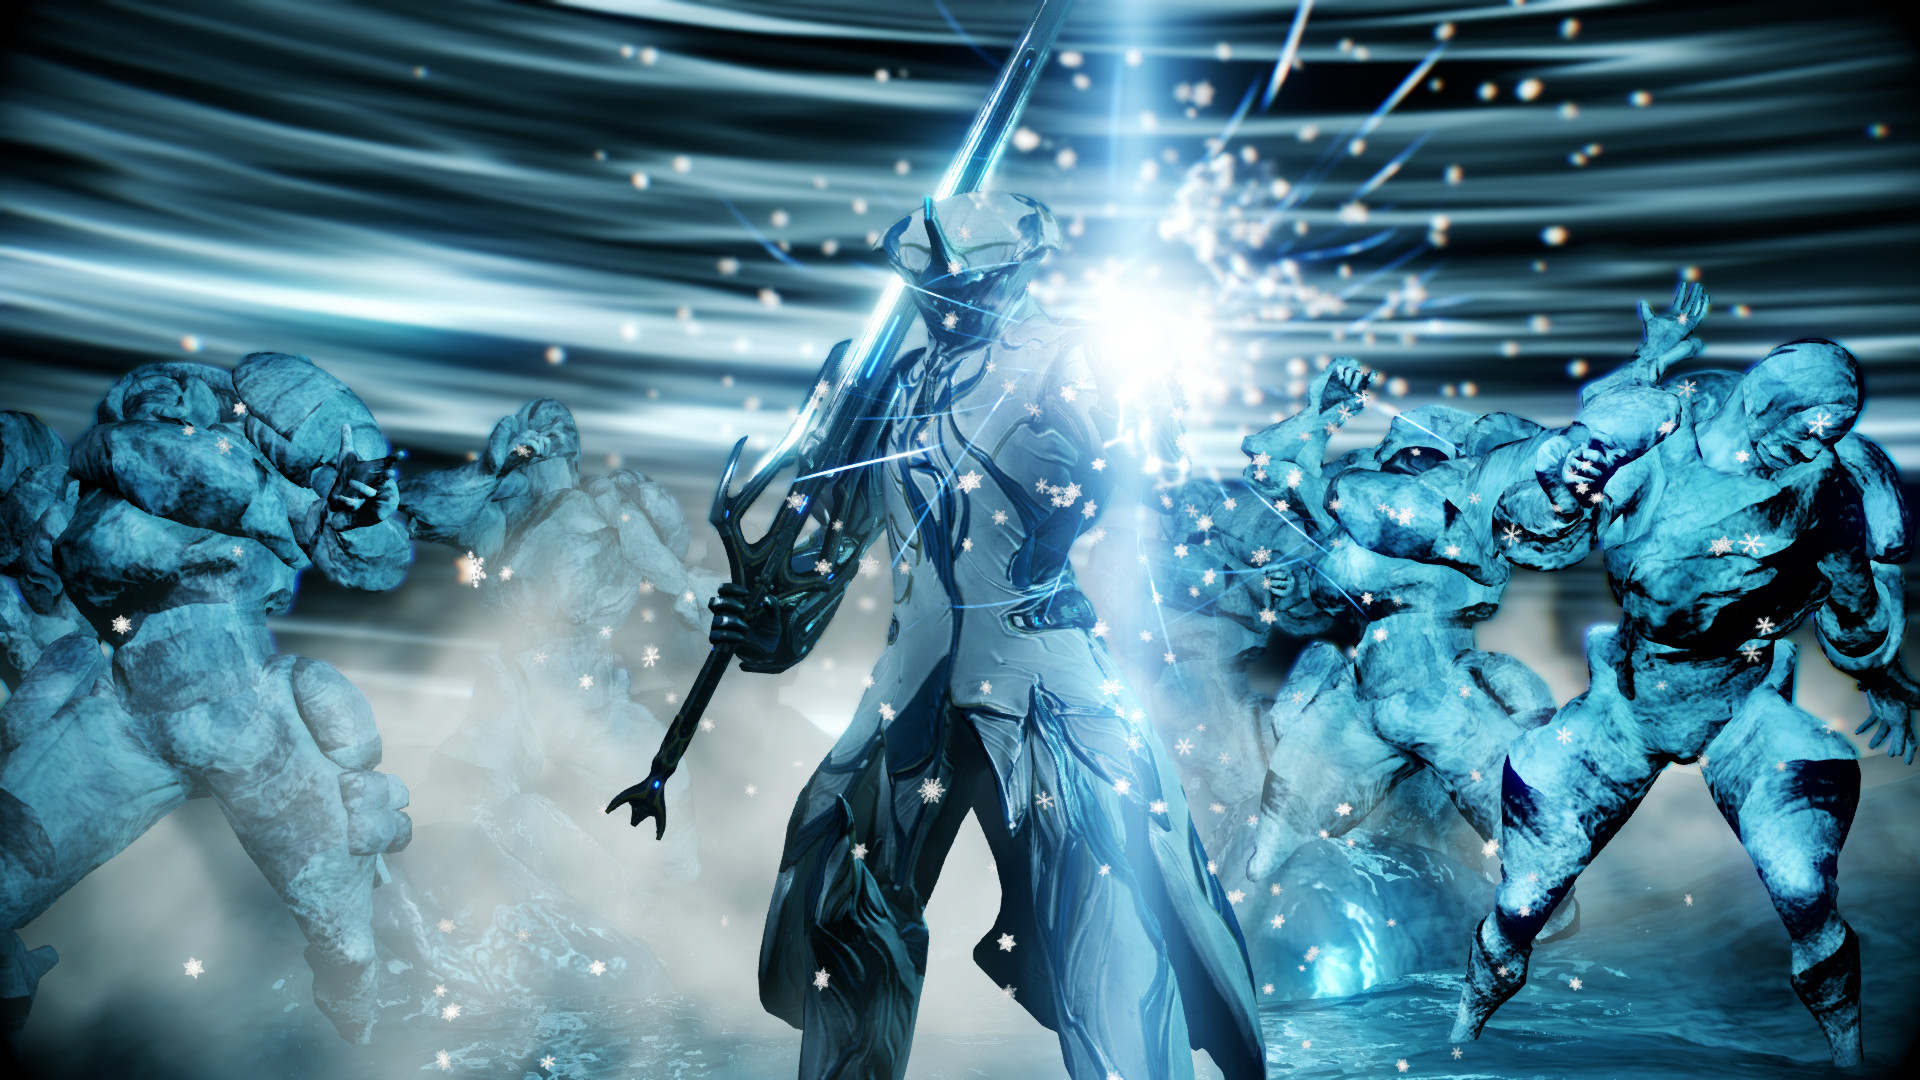 Res: 1920x1080, Warframe0054.png